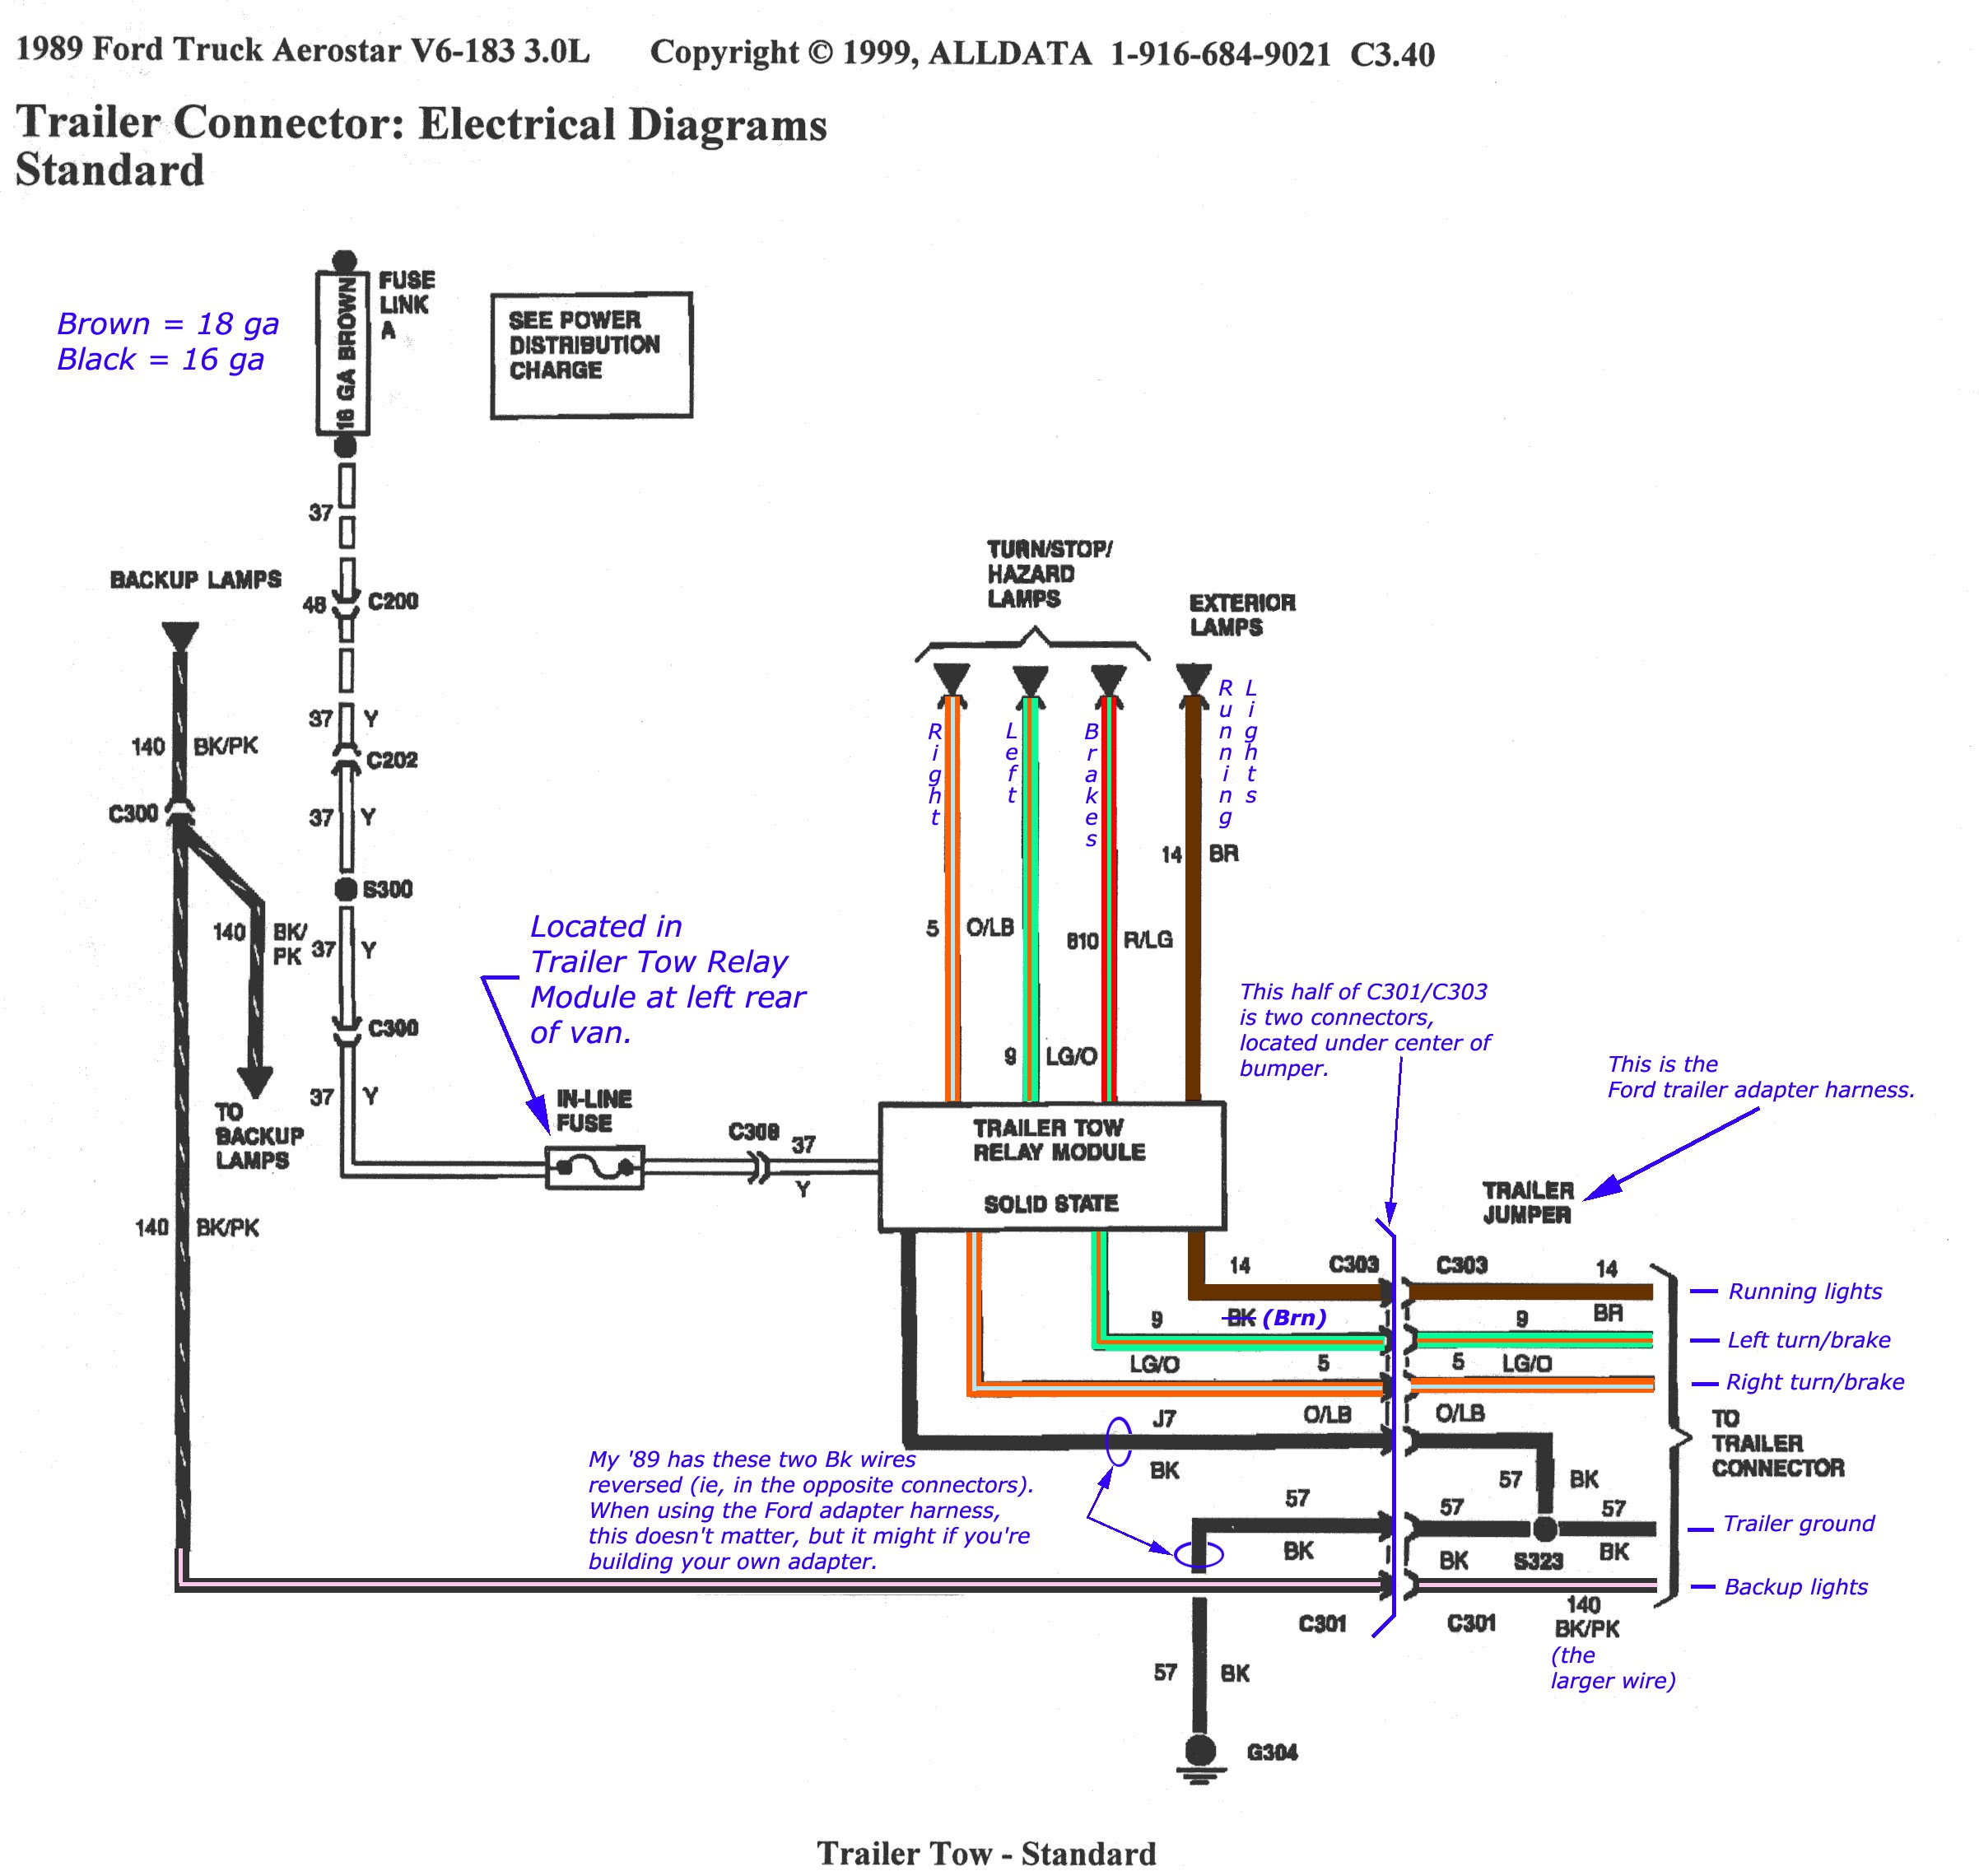 1997 f250 wiring diagram just wiring data rh ag skiphire co uk